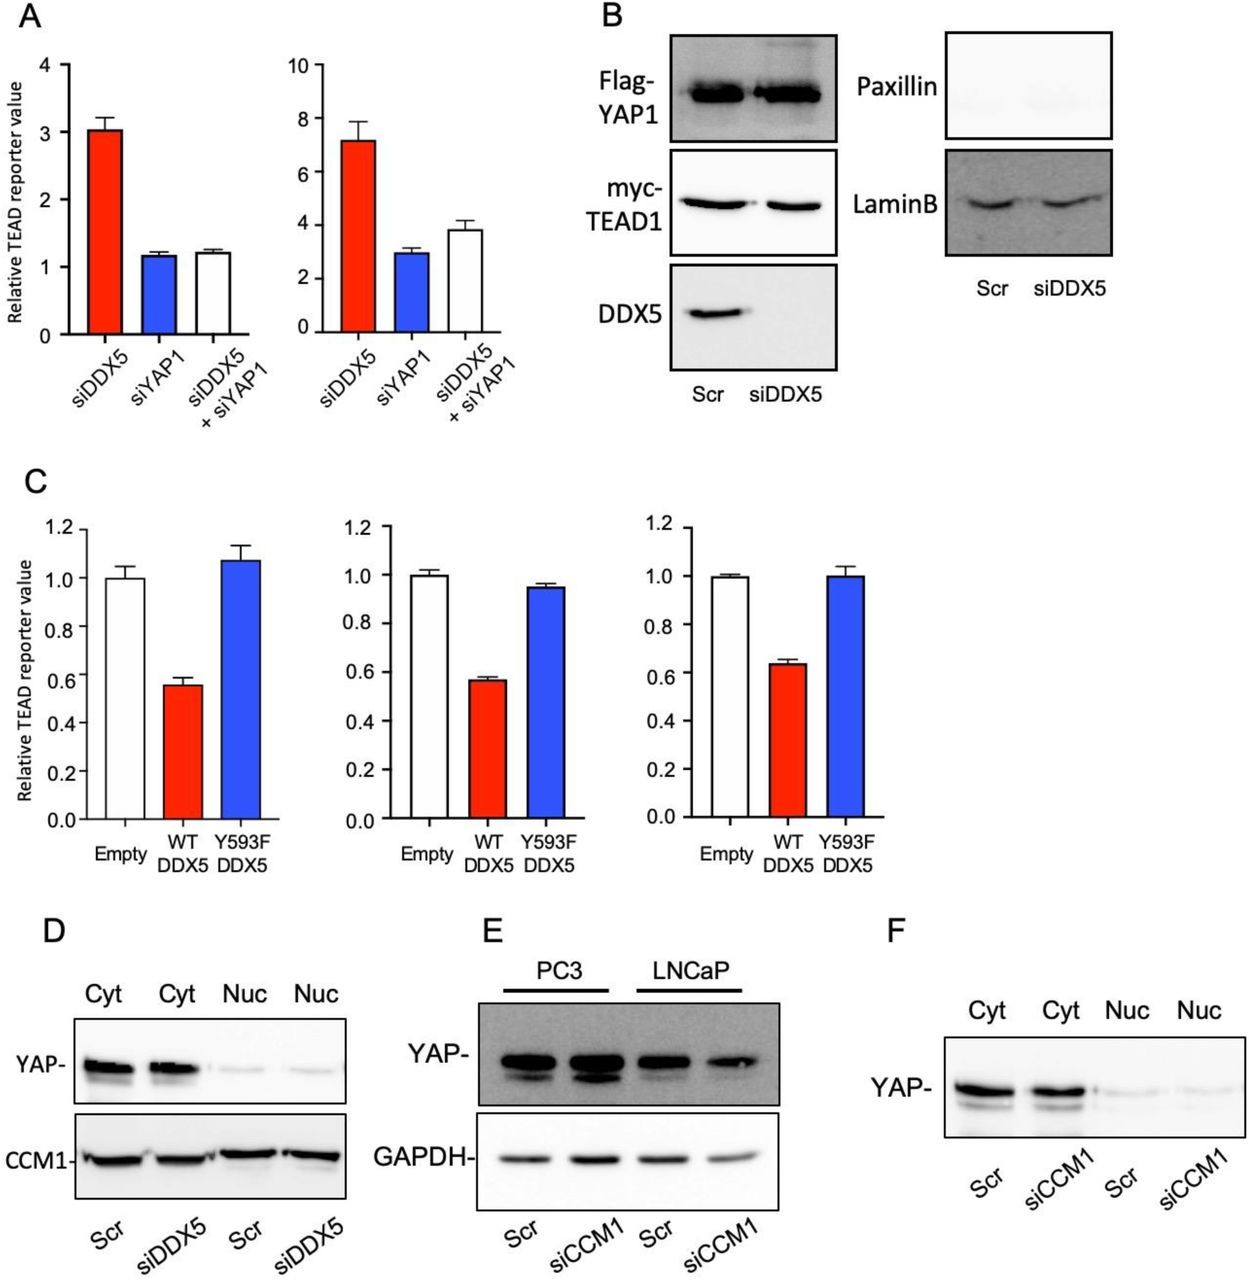 CCM1 and DDX5 regulate Yes-associated protein (YAP)/transcriptional co-activator with PDZ-binding motif signaling. (A) RNAi-mediated suppression of DDX5 or YAP1 alone or co-suppression of DDX5 and YAP1 was performed, and TEAD reporter activity was analyzed in C4-2 (left) and C4-2B (right) cells grown in medium supplemented with charcoal-stripped FBS and stimulated with DHT for 18 h. (B) PC3 cells co-transfected with overexpression plasmids for Flag-YAP, myc-TEAD1, and siDDX5, were harvested, and nuclear lysates were generated. Shown are immunoprecipitation input samples from the nuclear lysates used in Figure 5H . Paxillin, a cytosolic marker, is not shown in these nuclear lysates. (C) WT or Y593F DDX5 was overexpressed in LNCaP (left), C4-2B (middle), and CWR22r (right) cells, and TEAD reporter activity was measured. (D) Subcellular localization of YAP was analyzed in DDX5-suppressed PC3 cells. (E) YAP expression was analyzed in the total lysates of CCM1-suppressed PC3 and LNCaP cells. (F) Subcellular localization of YAP was analyzed in CCM1-suppressed PC3 cells. Cyt: cytosolic fraction, Nuc: nuclear fraction.